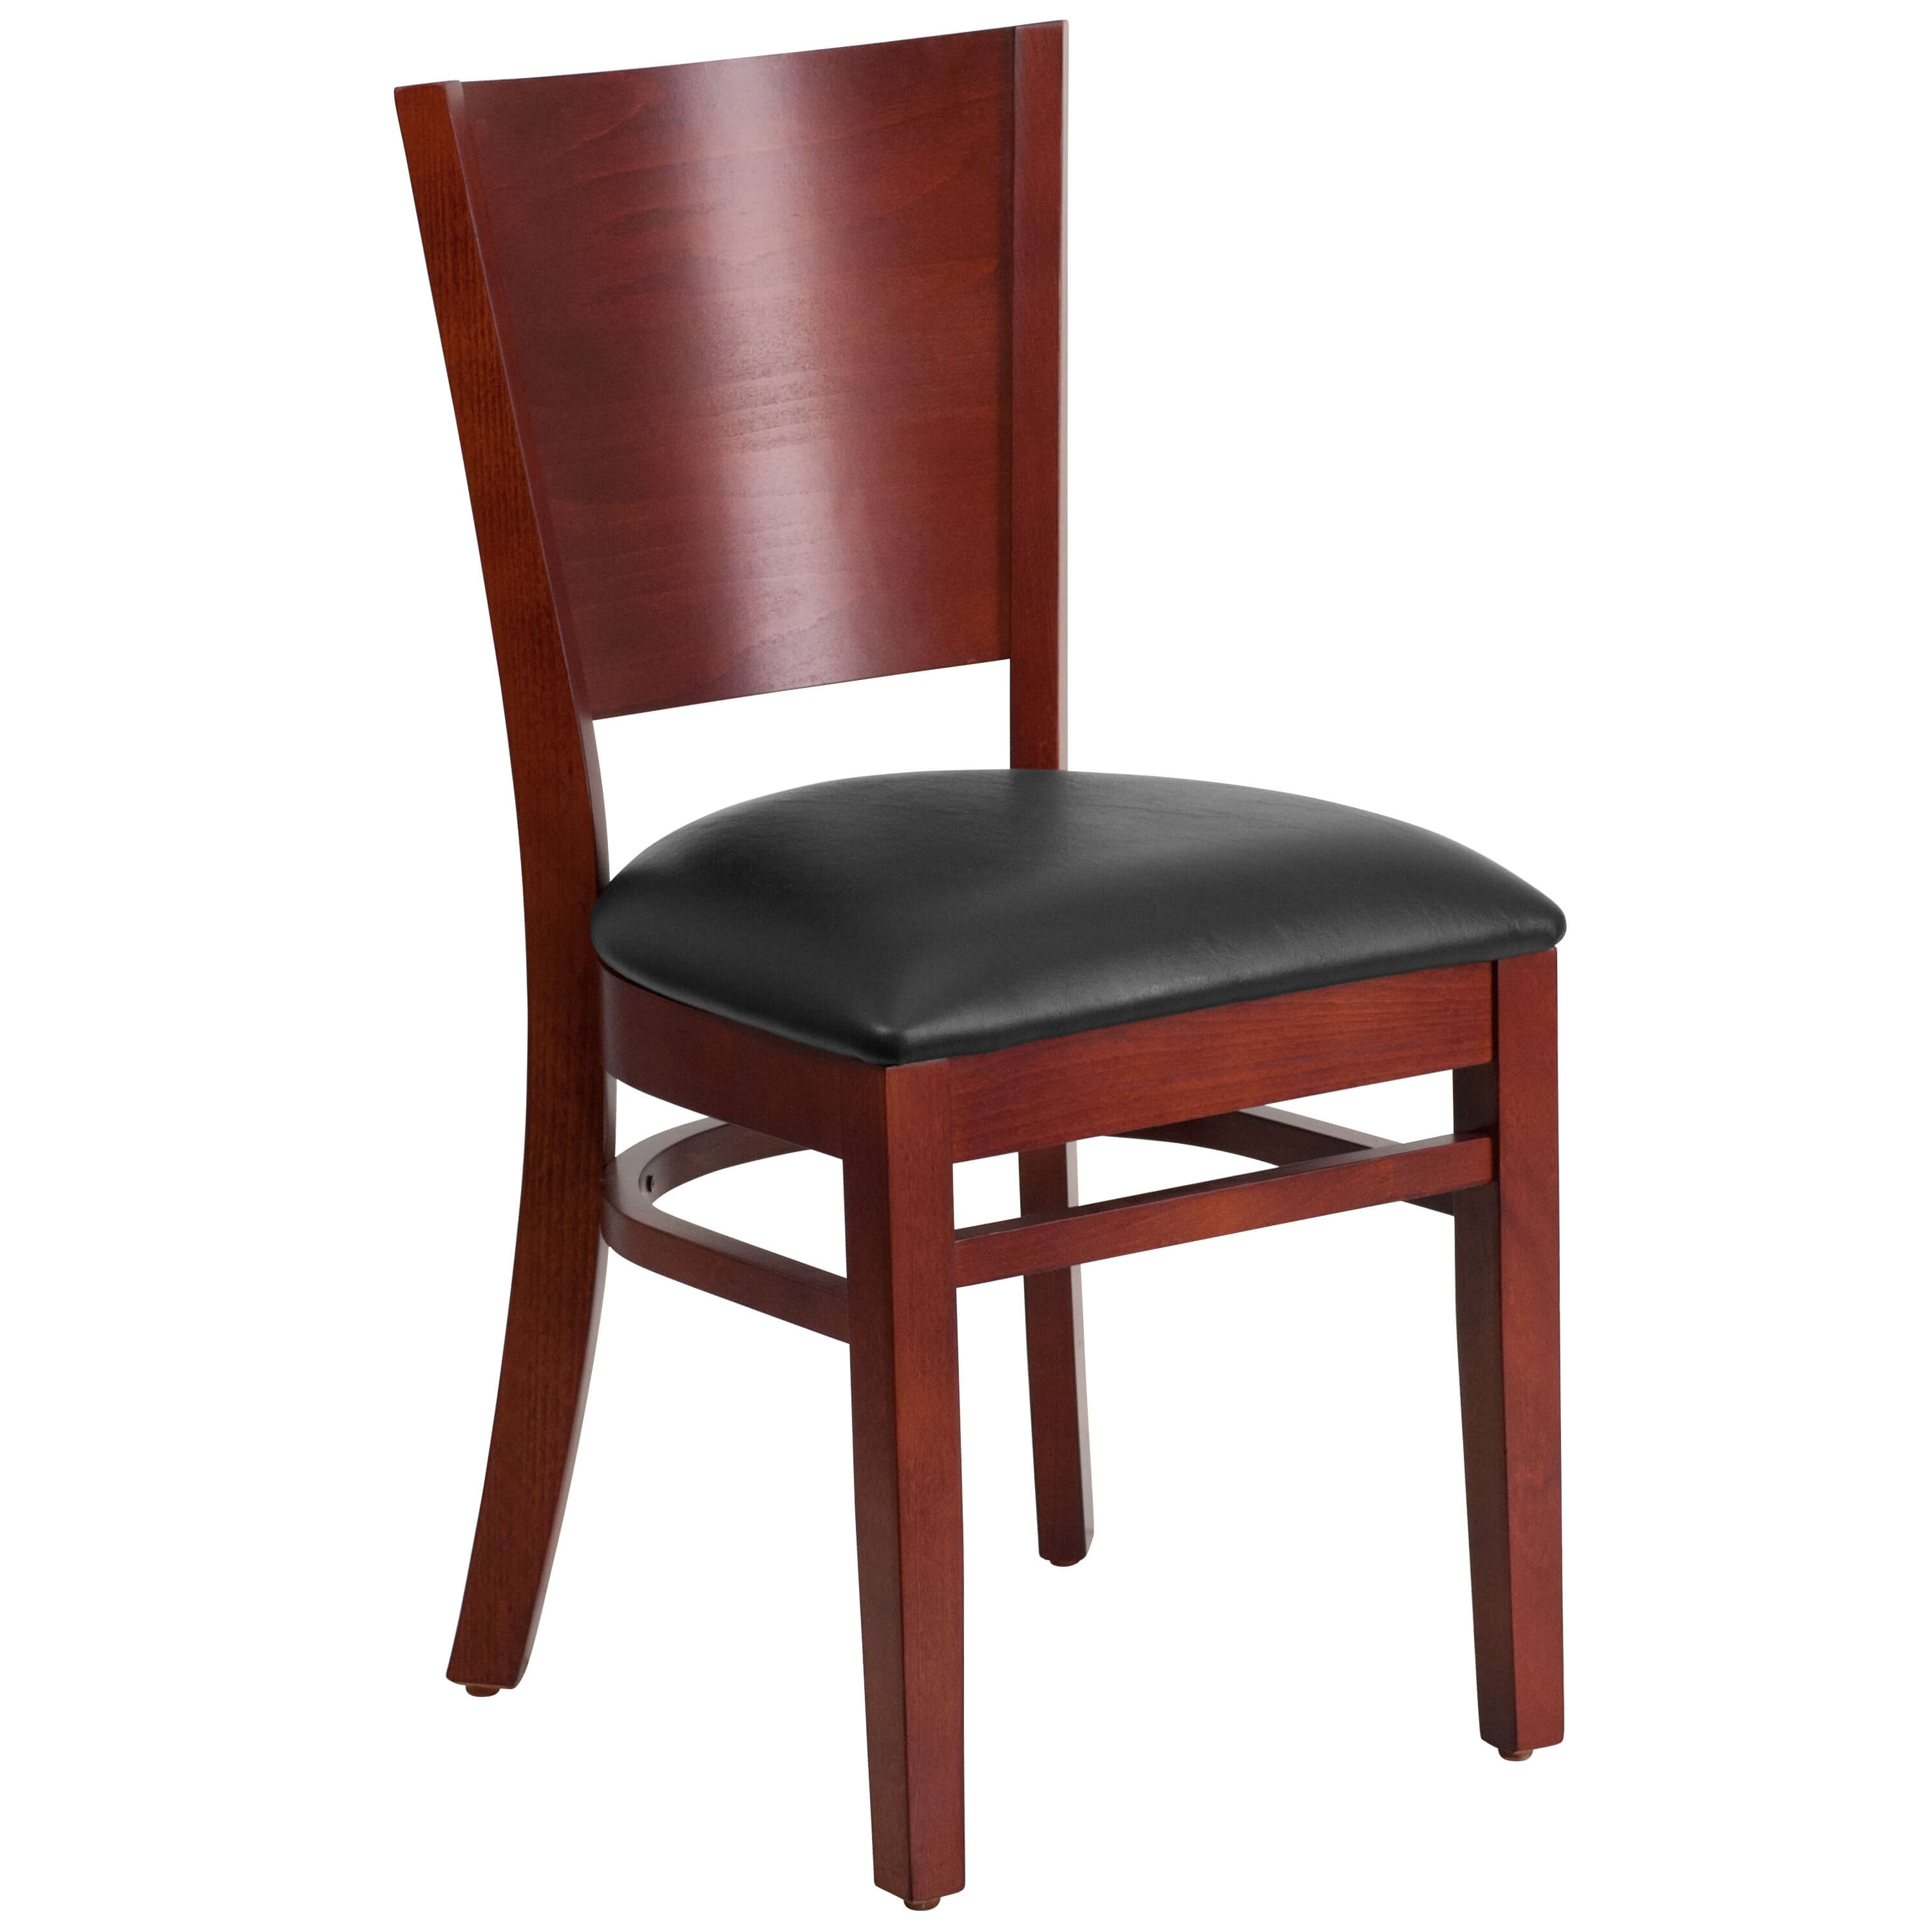 restaurant-tables-and-chairs-solid-wood-dining-chairs.jpg